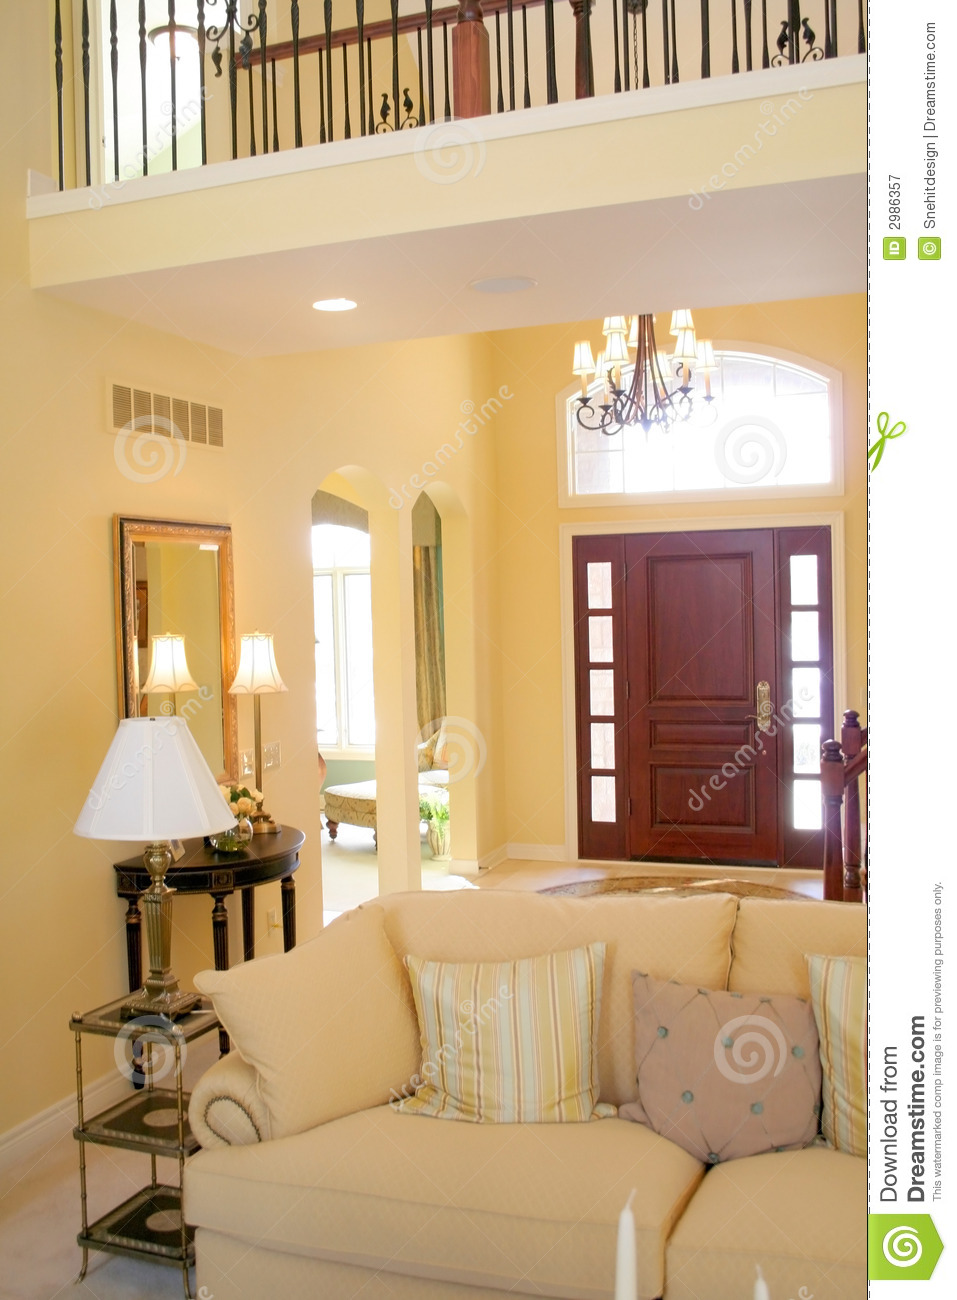 Beautiful Interiors stock image Image of lamp couches  2986357